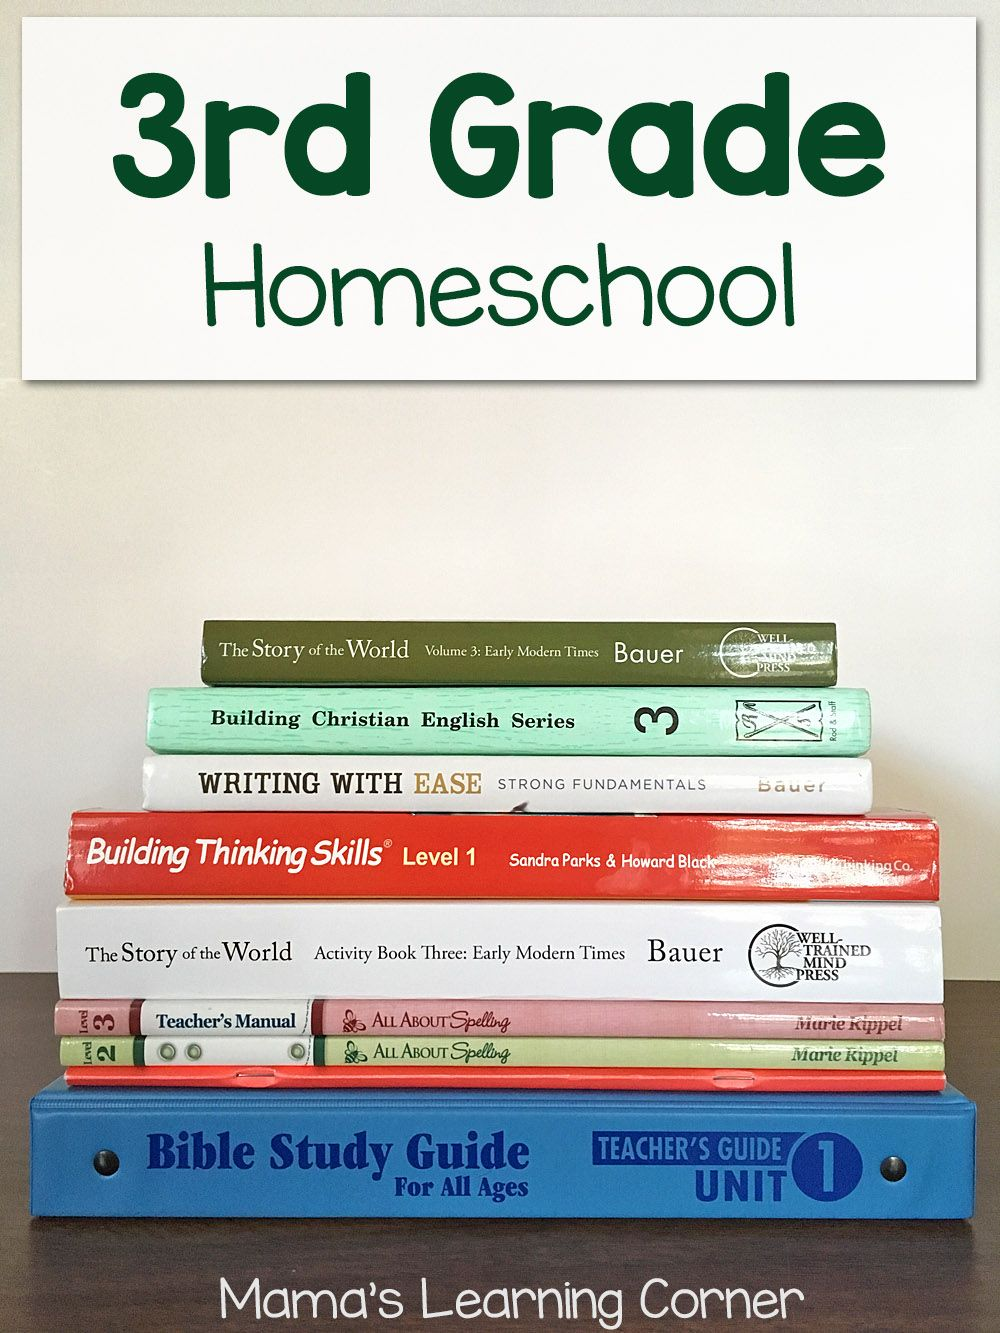 Third Grade Homeschool Curriculum Plans For 2017 2018 Best Of